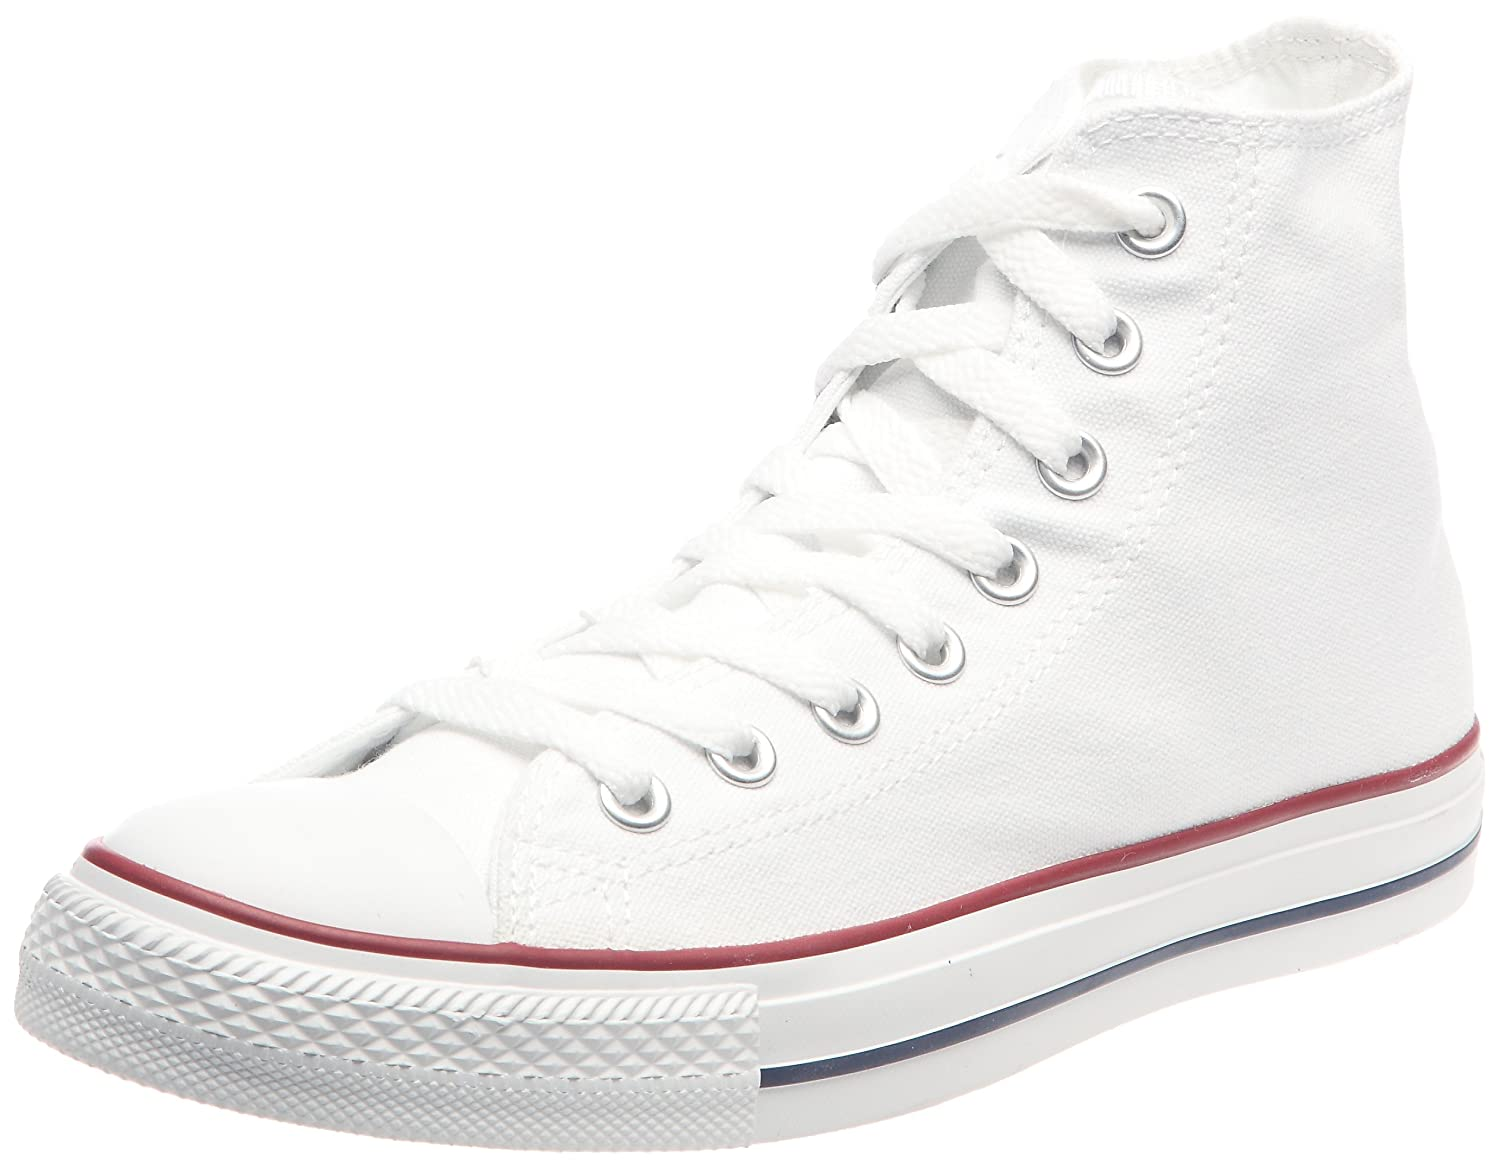 Converse Ctas Core Hi, Hi, Baskets mode adulte mixte Core adulte 69d0792 - avtodorozhniks.space